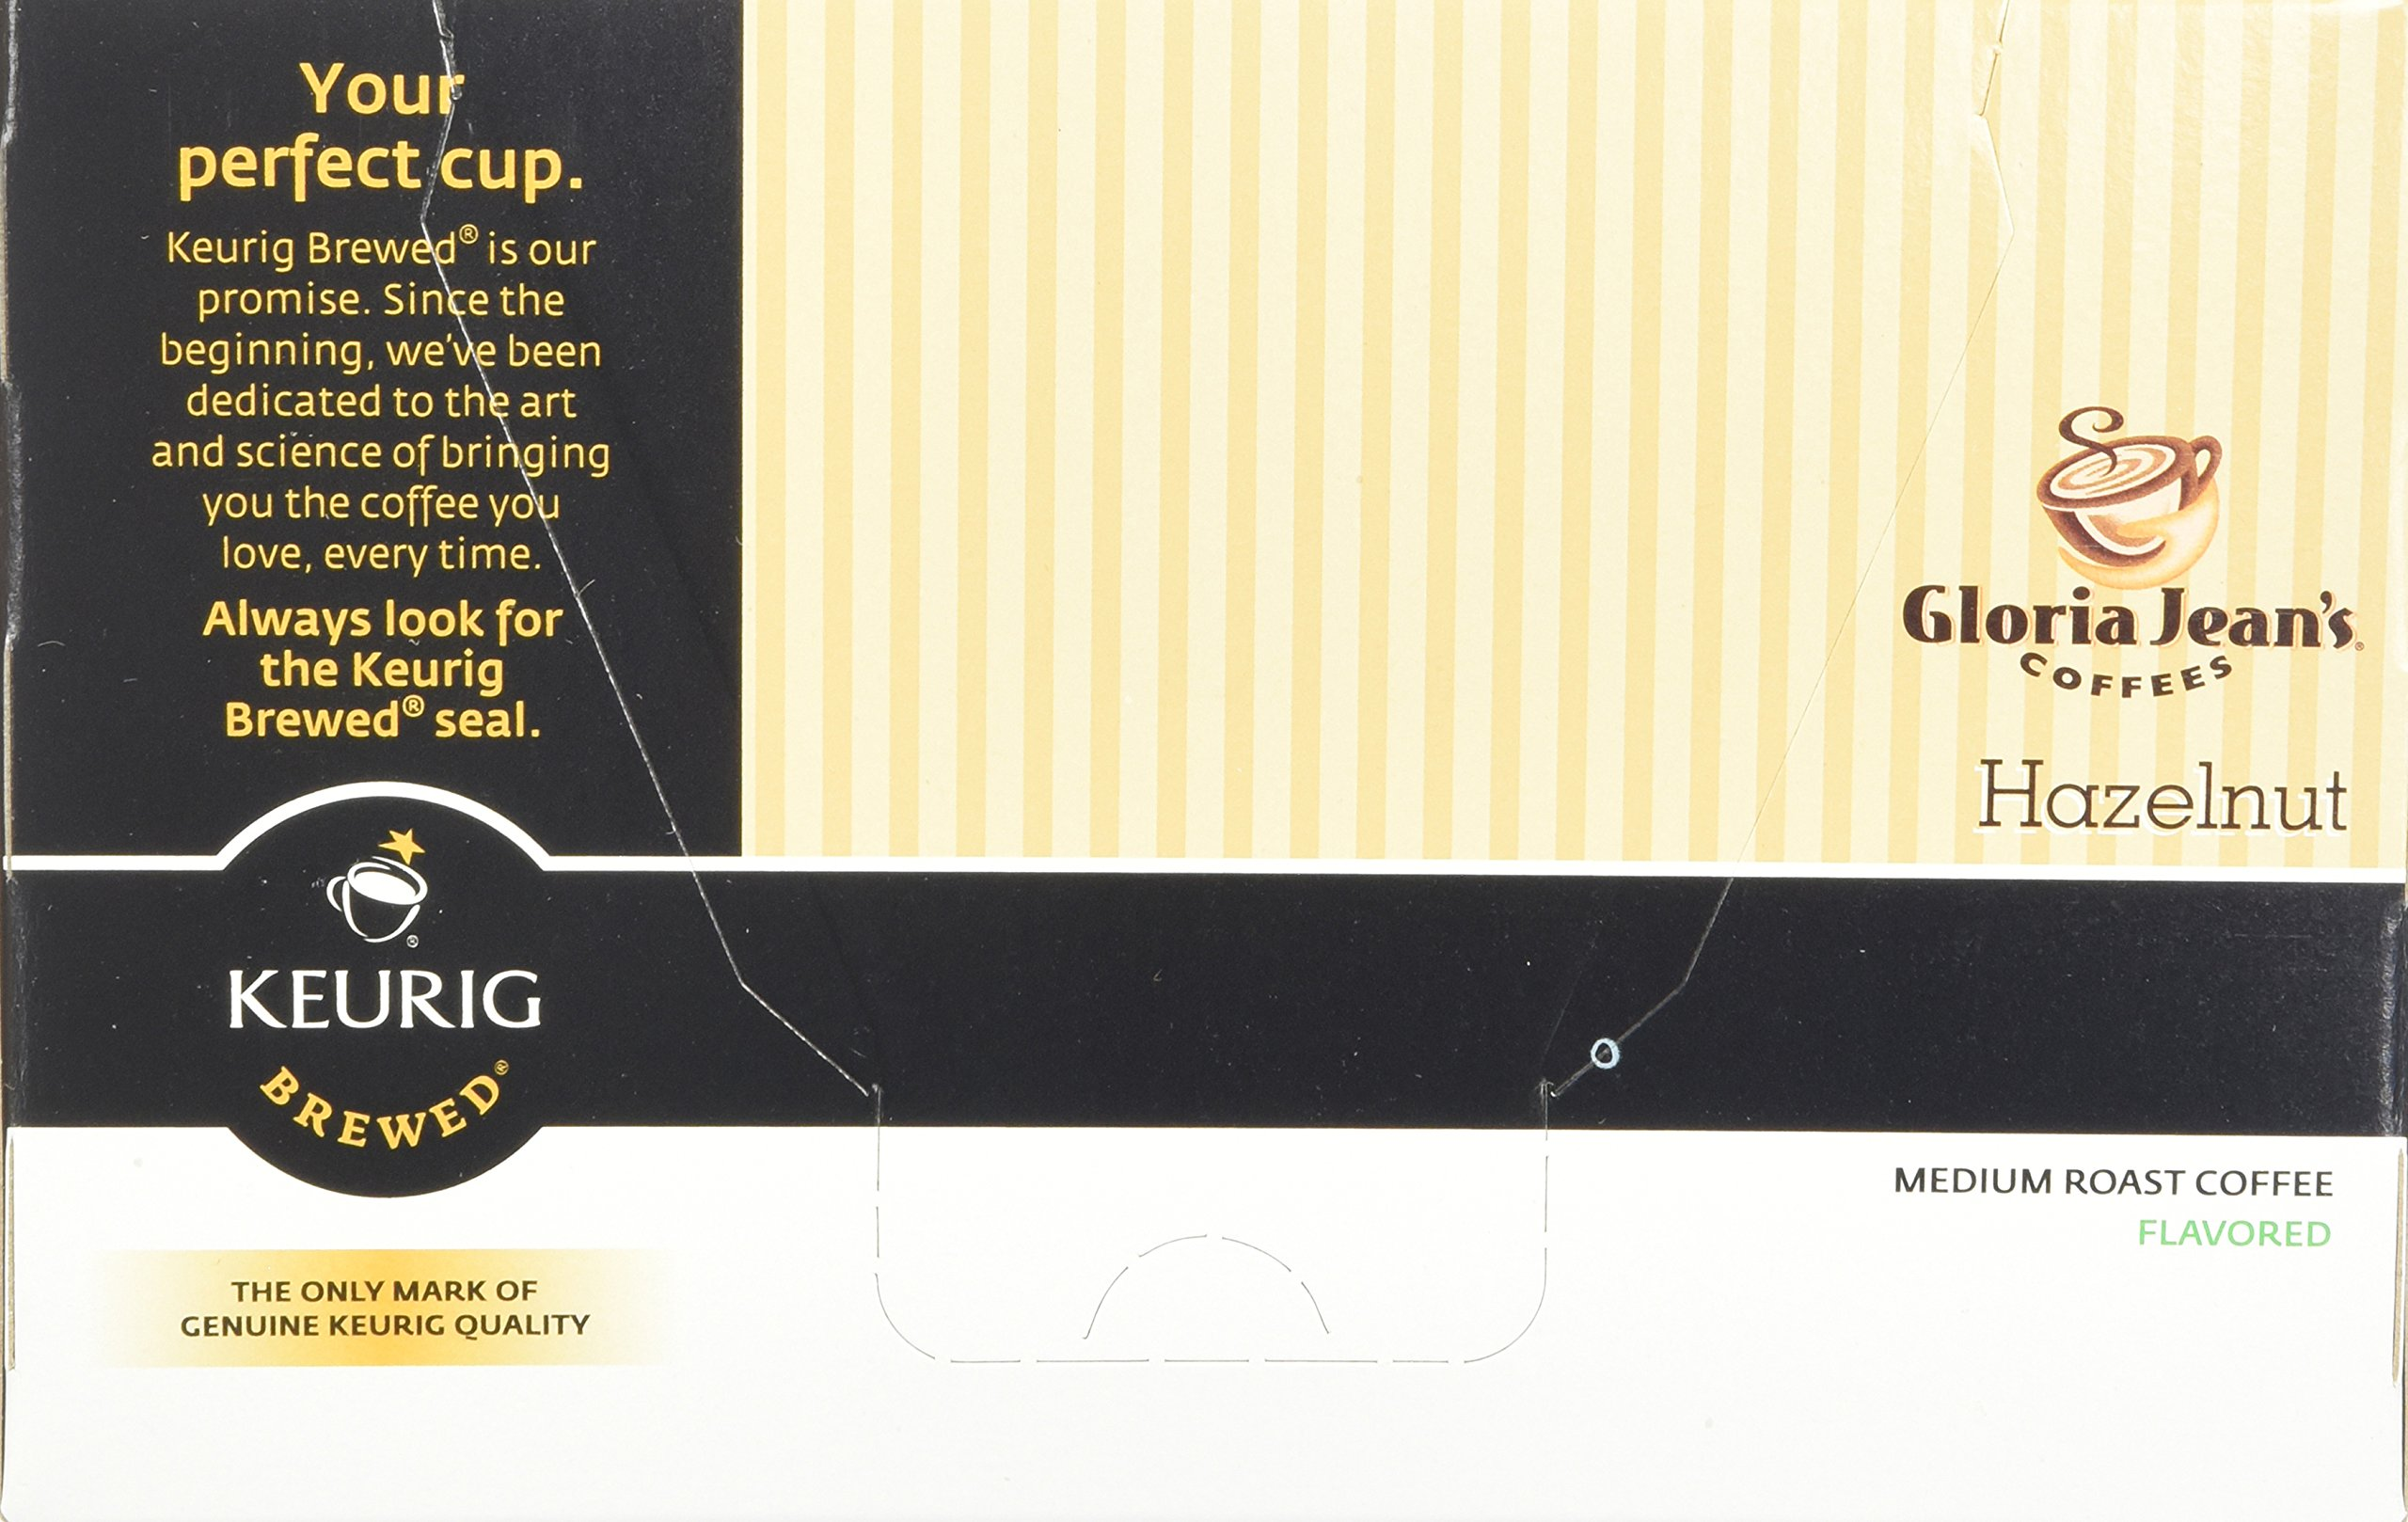 Green Mountain Coffee Roasters Gourmet Single Cup Coffee Hazelnut Gloria Jean's Coffee 12 K-Cups by Green Mountain Coffee Roasters (Image #6)